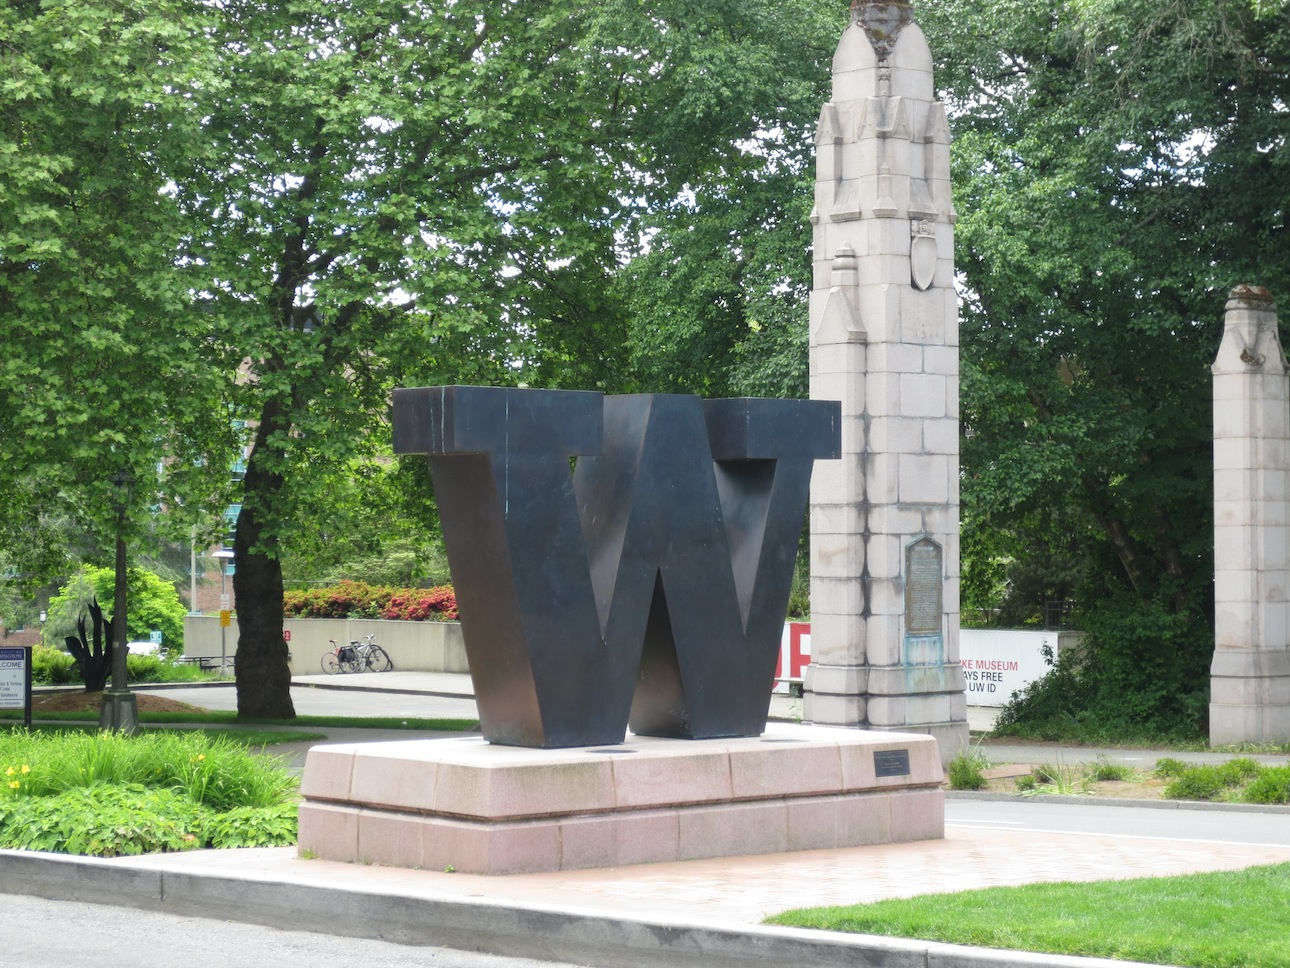 University of Washington logo at the entrance to their campus.